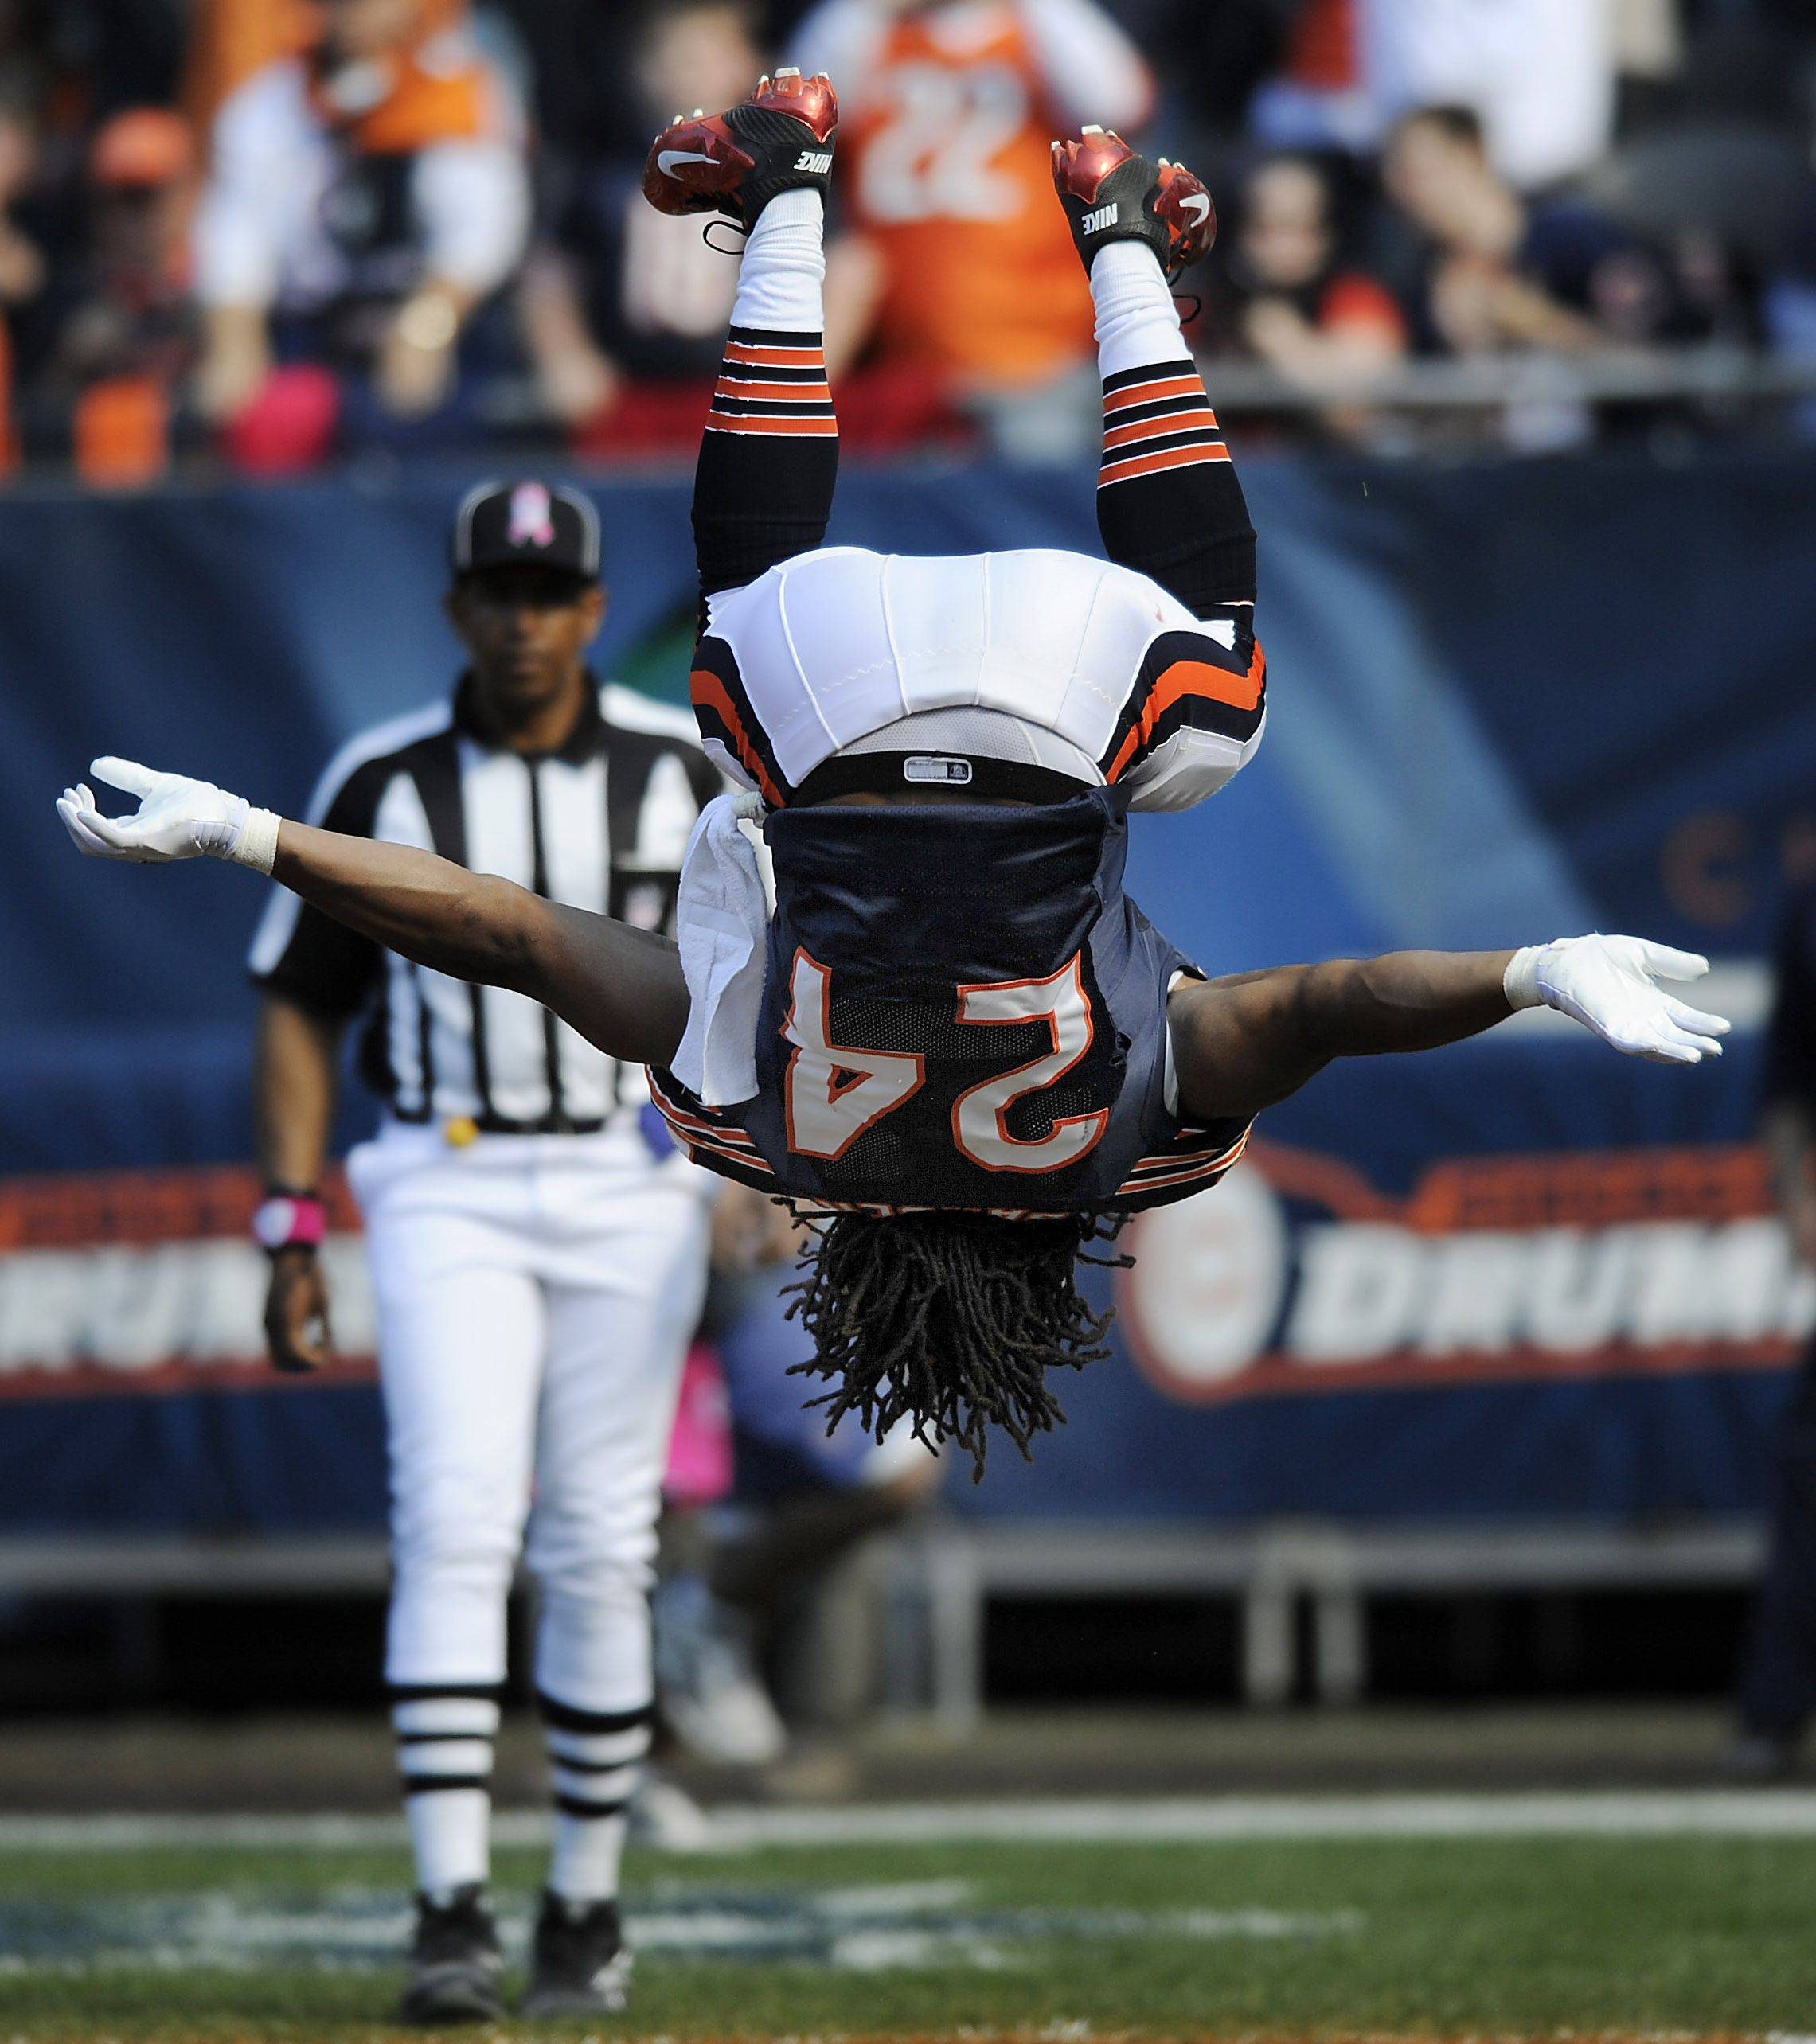 This back flip by running back Marion Barber to celebrate his fourth-quarter touchdown -- his first for the Bears -- did not result in a graceful landing. Barber wound up with his face in the end-zone turf, much to the amusement of his teammates.